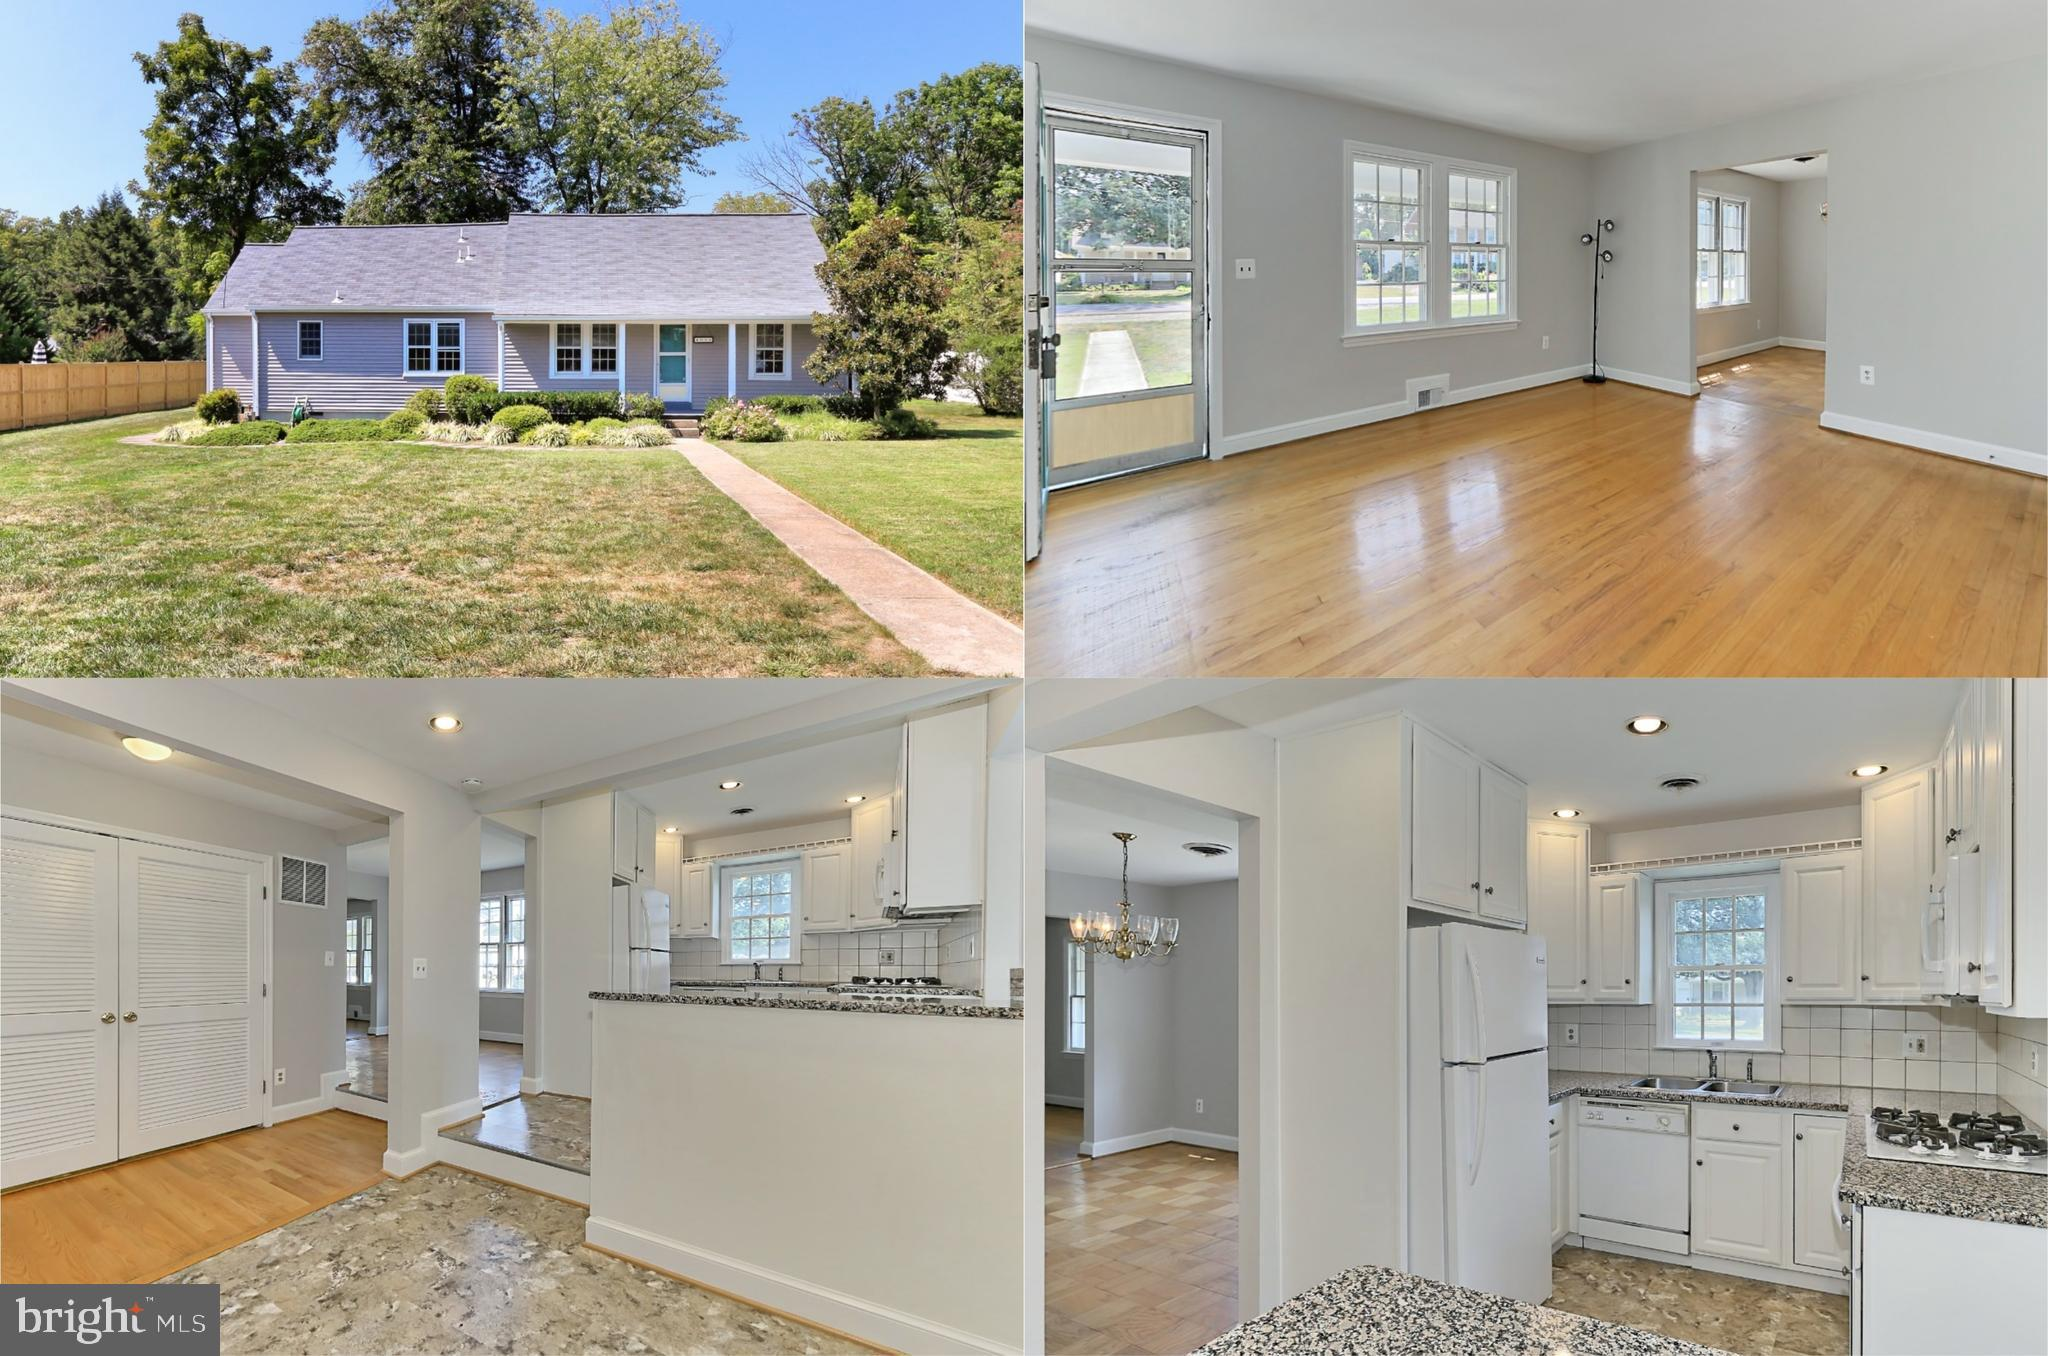 OFFER DEADLINE - TUESDAY, 9/10 AT NOON. Nestled in the well-established Fairland community, this charming 4 bedroom, 2 bath rambler home delivers plenty of space for living and a .28 acre wooded lot on a quiet street. A tailored siding exterior, front porch entrance, expert landscaping, patio deck, and gardener's shed are just some of the features that make this home so special. A sparkling kitchen updated to perfection creates instant appeal, while loving maintenance such as a newer HVAC, hot water heater, roof, appliances and fresh on-trend neutral paint make it move-in ready and just waiting for you to claim it as your own. Warm hardwood flooring welcomes you home and ushers you into the living room where twin windows flood the space with natural light and create an inviting atmosphere for entertaining or simple relaxation. The adjoining dining room offers space for all occasions and is accented by a shimmering candelabra-style chandelier adding a distinctly tailored feel. The sparkling gourmet kitchen serves up a feast for the eyes with gleaming granite countertops, an abundance of pristine 42 inch cabinetry, decorative backsplashes, and quality appliances including a gas cooktop and built-in microwave. Earth-toned flooring brings warmth to the space and flows into the breakfast area which provides ample space for daily dining. Further, the family room is highlighted by a cathedral ceiling and a glass-paned door opening to the patio deck and gardener's shed~seamlessly blending indoor and outdoor living.Hardwoods continue into the owner's suite boasting room for a sitting area, a walk-in closet tailored with custom shelving, and a private bath with a glass-enclosed tub/shower combo accented with spa-toned tile. Down the hall, two additional bright and cheerful bedrooms, each with hardwoods and generous closet space, enjoy access to the beautifully appointed hall bath with wainscoting. Fine craftsmanship continues upstairs and into the private 4th bedroom with dor